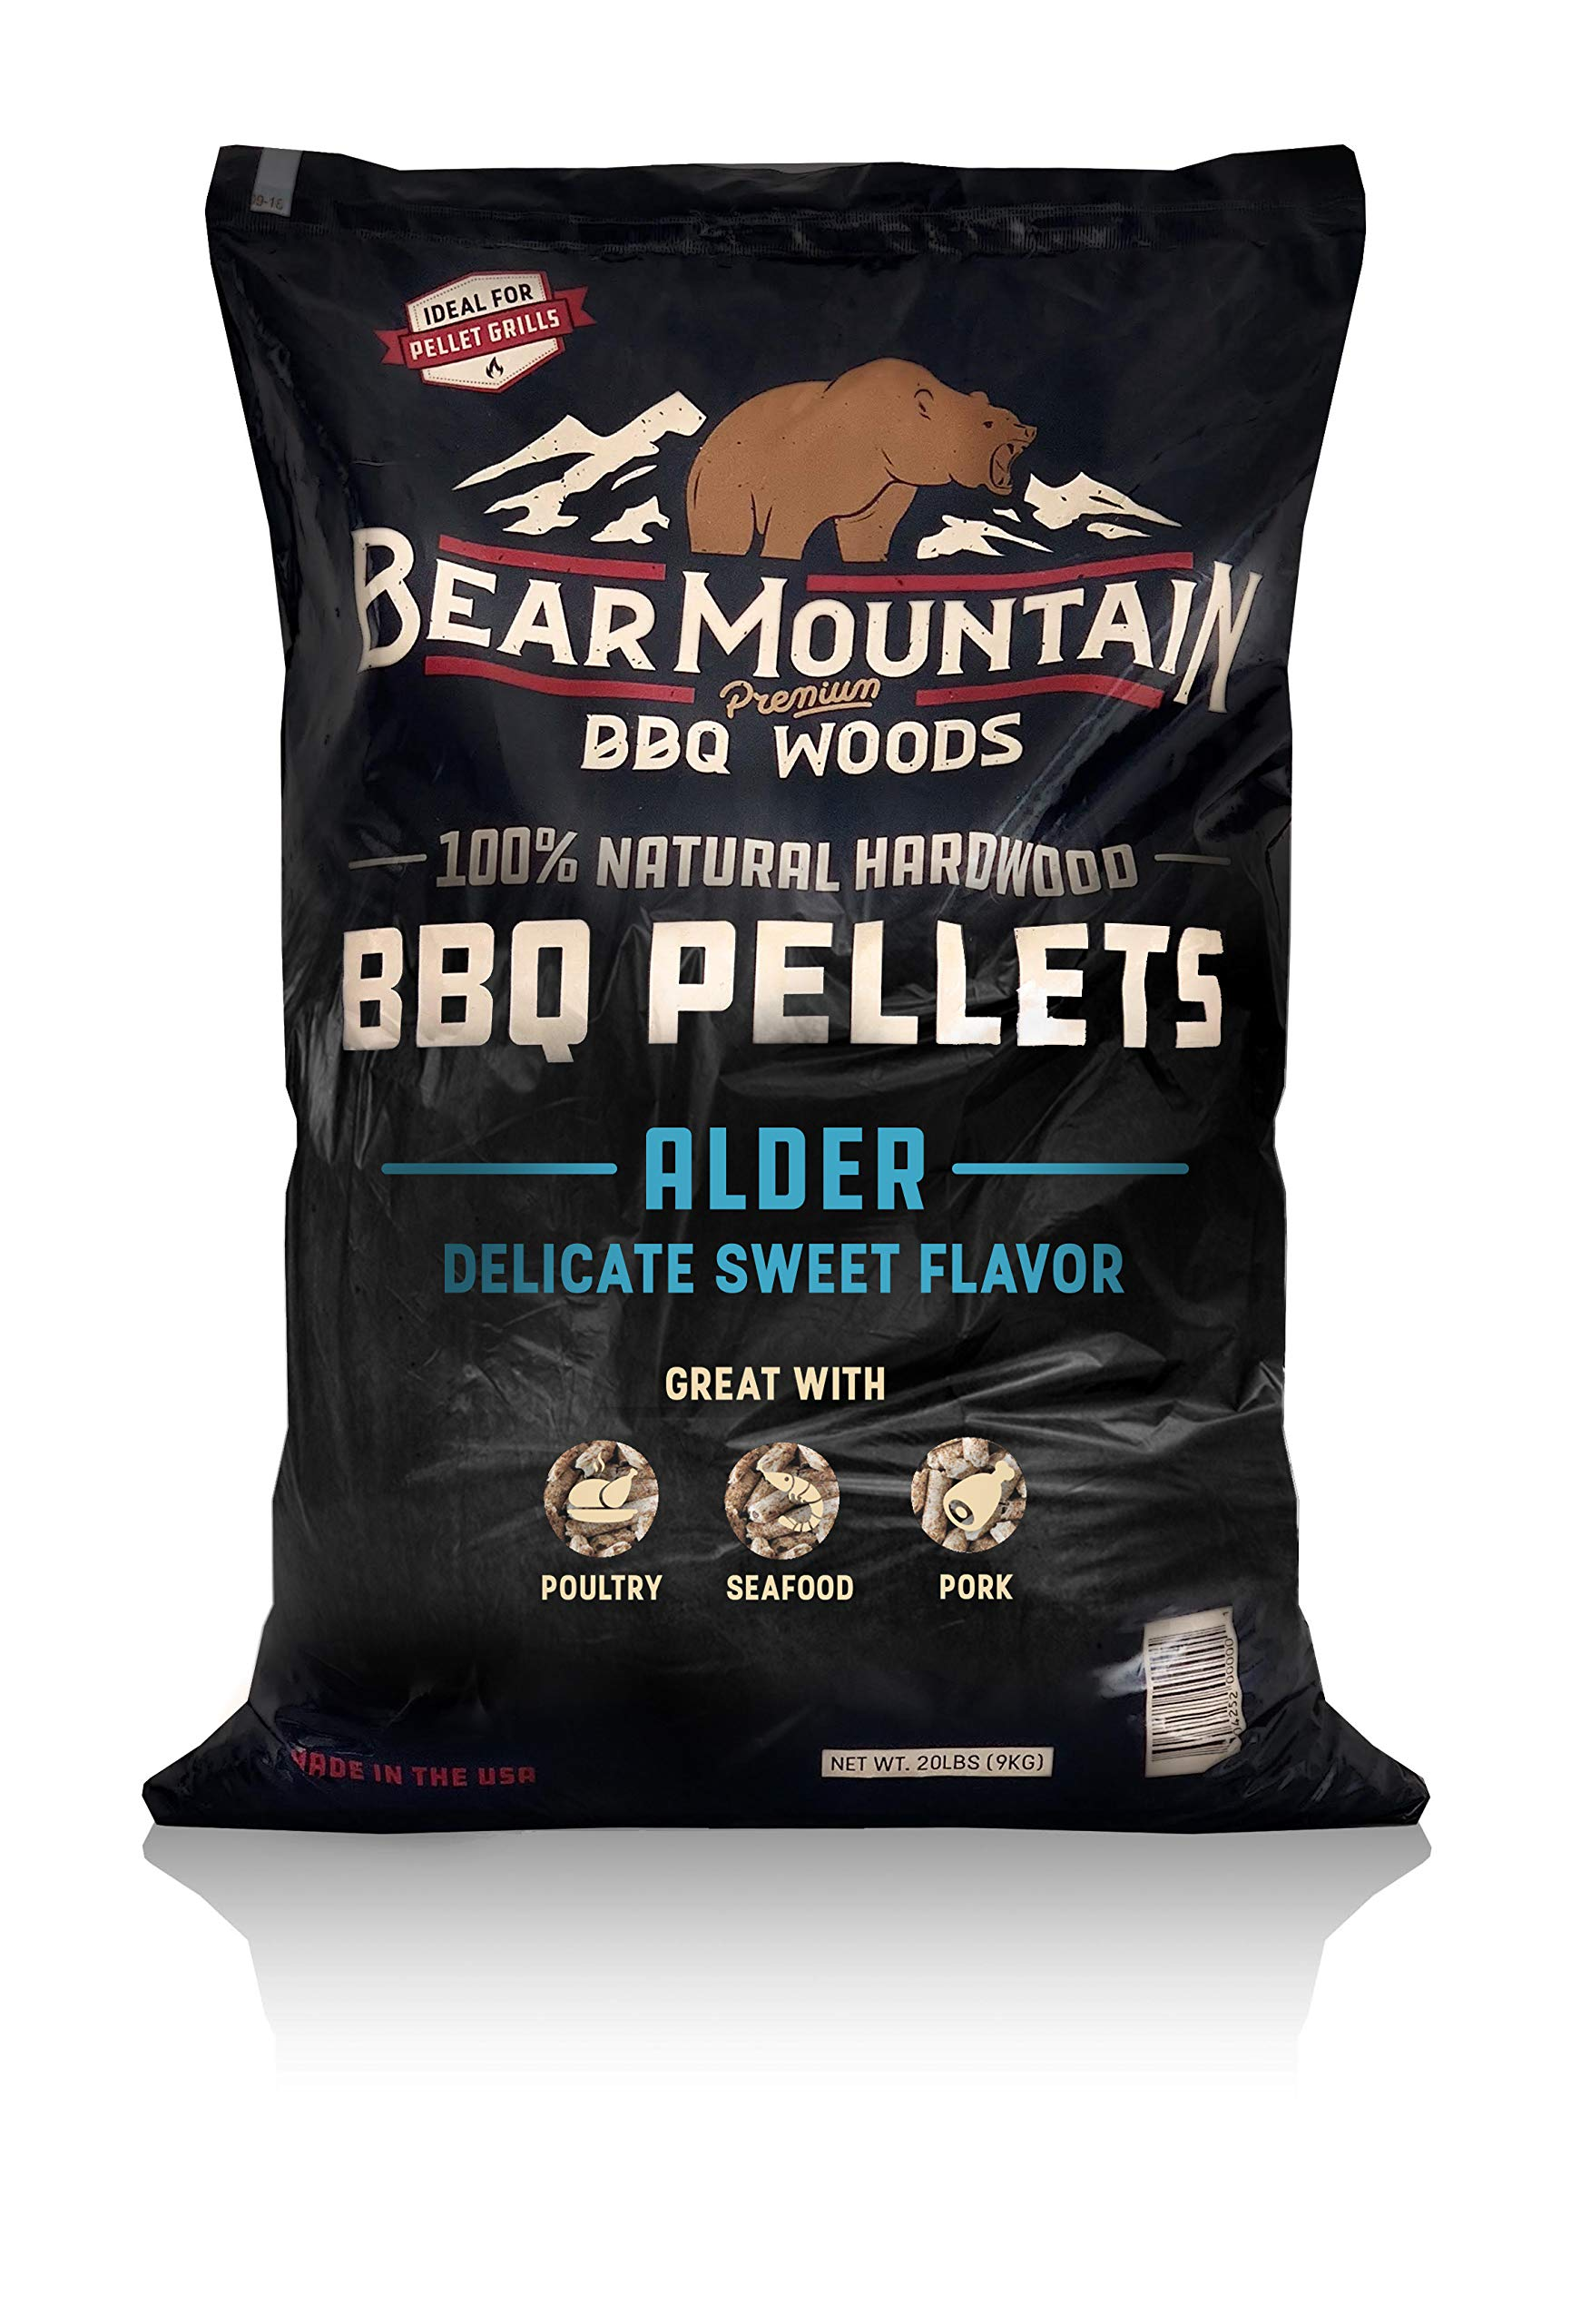 Bear Mountain BBQ 100% All-Natural Hardwood Pellets - Alder Wood (20 lb. Bag) Perfect for Pellet Smokers, or Any Outdoor Grill   Rich, Smoky Wood-Fired Flavor